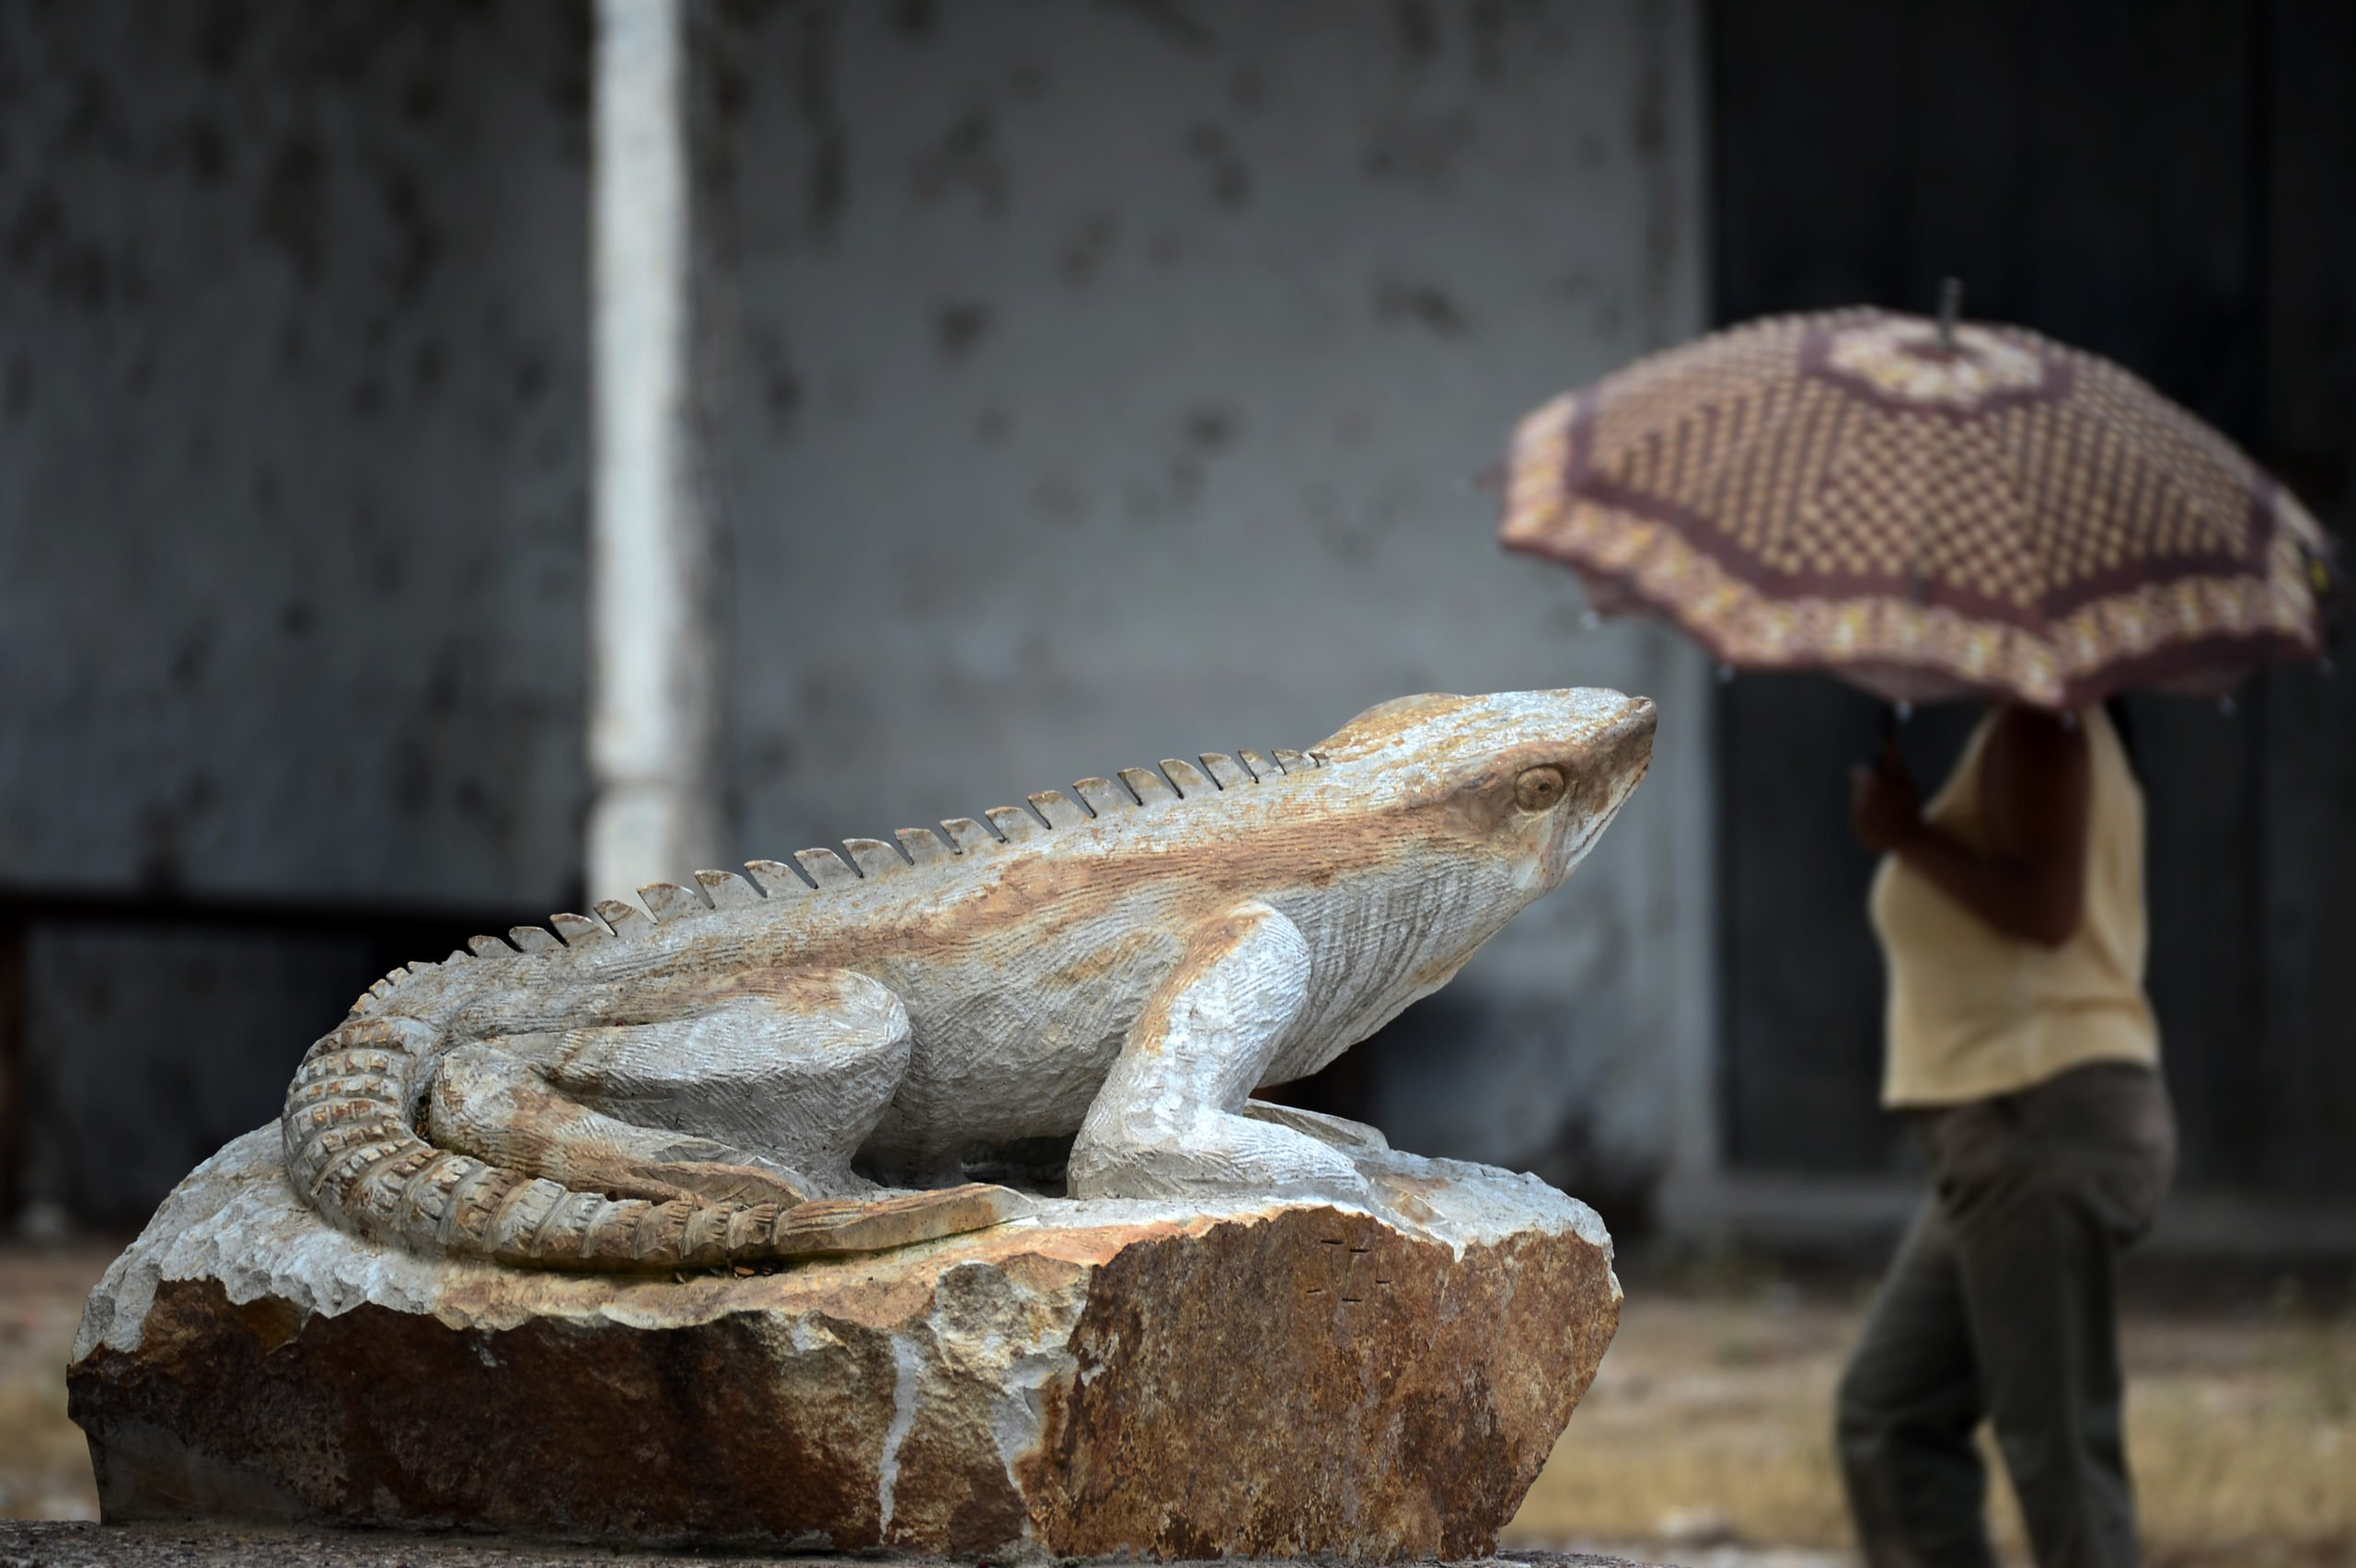 A sculpture of an iguana is seen in the municipality of Cantarranas, Francisco Morazan Department, 30 km northwest of Tegucigalpa, on October 6, 2020, amid the COVID-19 novel coronavirus pandemic. (Photo by Orlando SIERRA / AFP) (Photo by ORLANDO SIERRA/AFP via Getty Images)